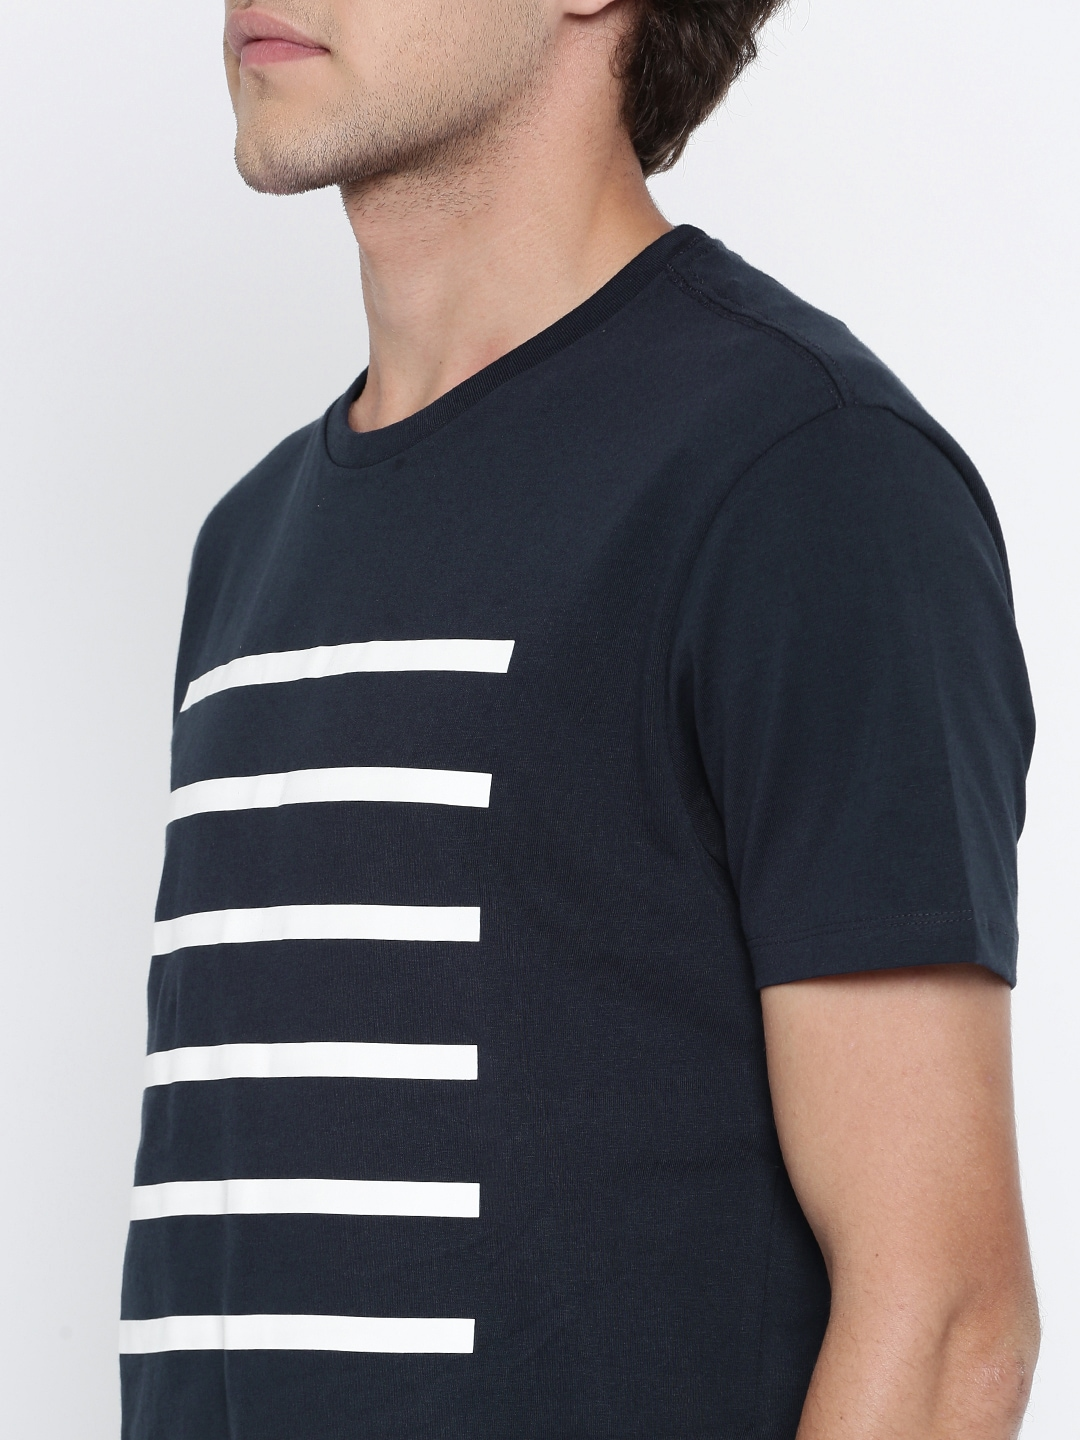 Design t shirt and sell online - Design T Shirt And Sell Online 59